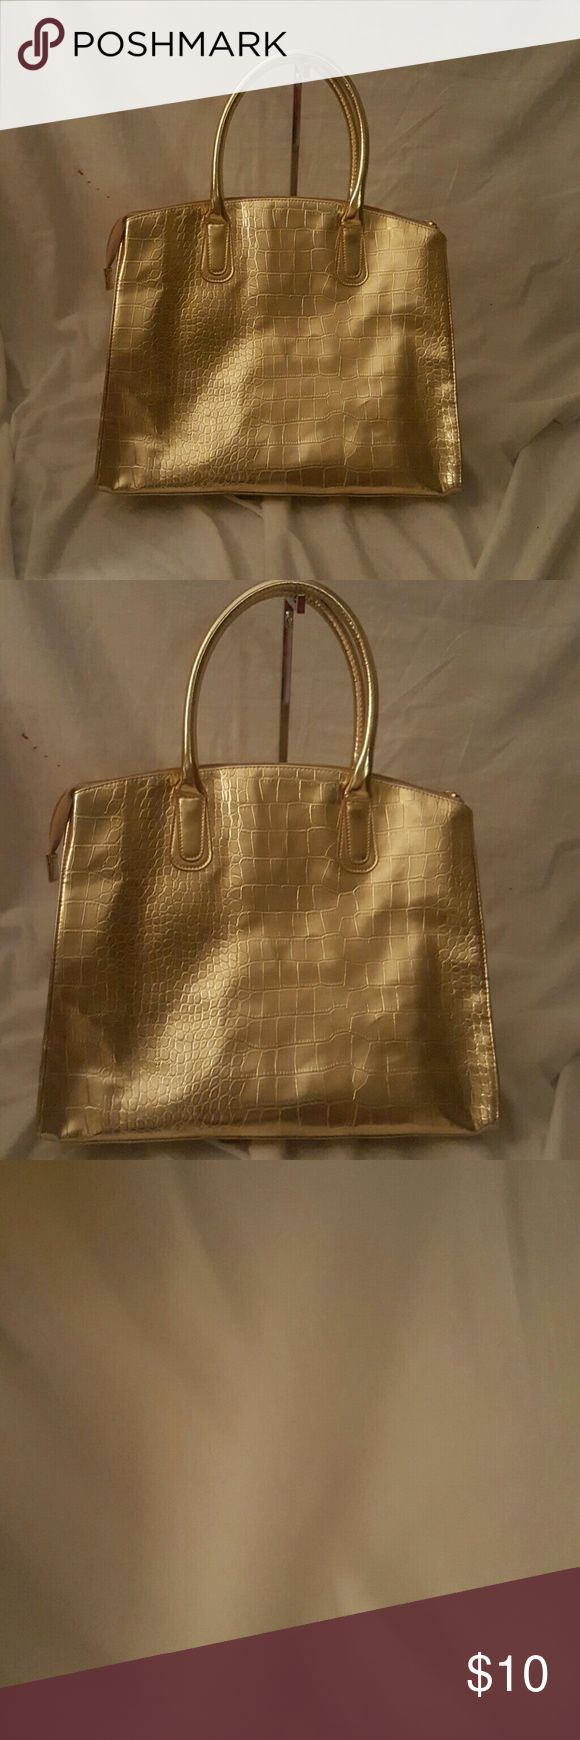 Gold tote handbag new.no tags Gorgeous and spacious gold tote bag, new no tags. Looks gorgeous with a cute top and white pants for a stunning spring look. Bags Totes